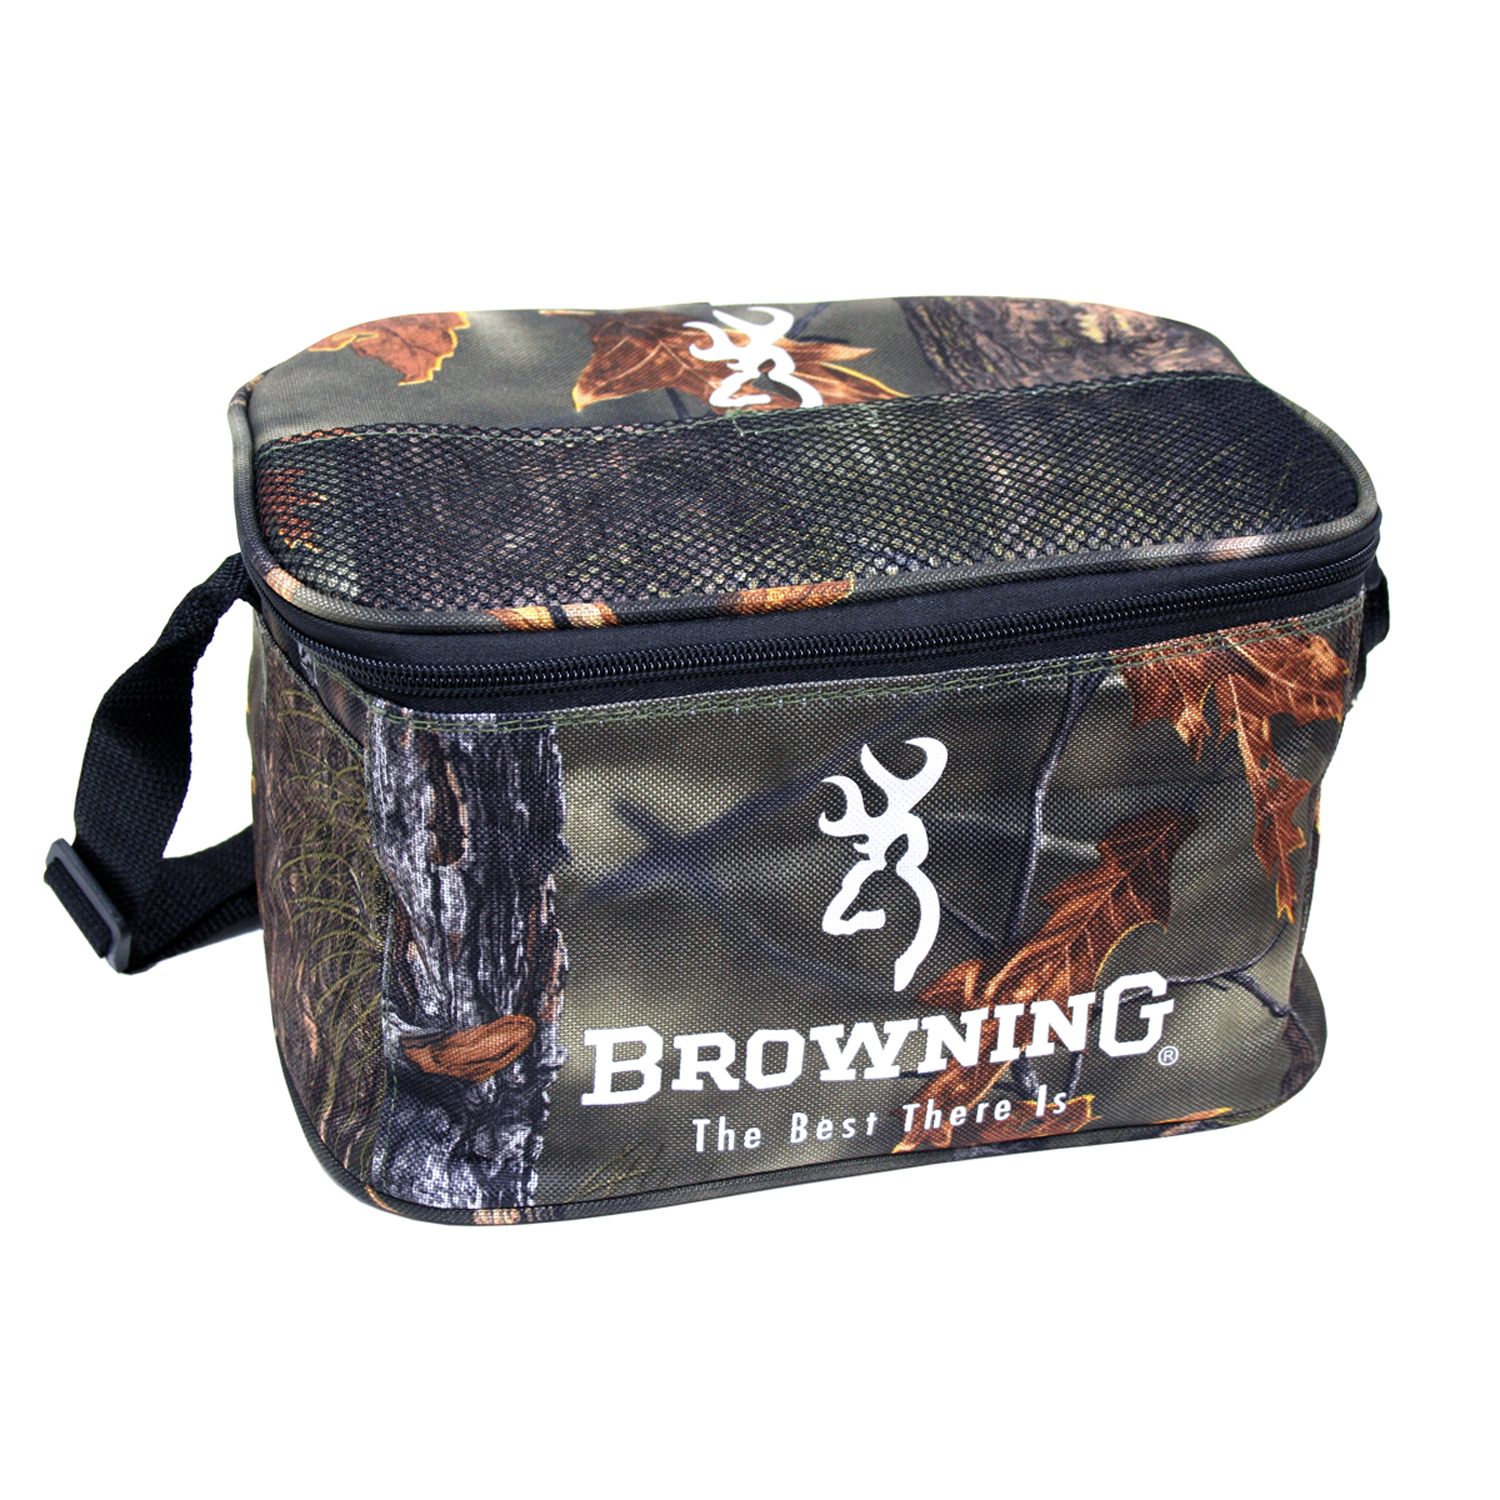 Browning 6 count Small Camo SoftSide Cooler